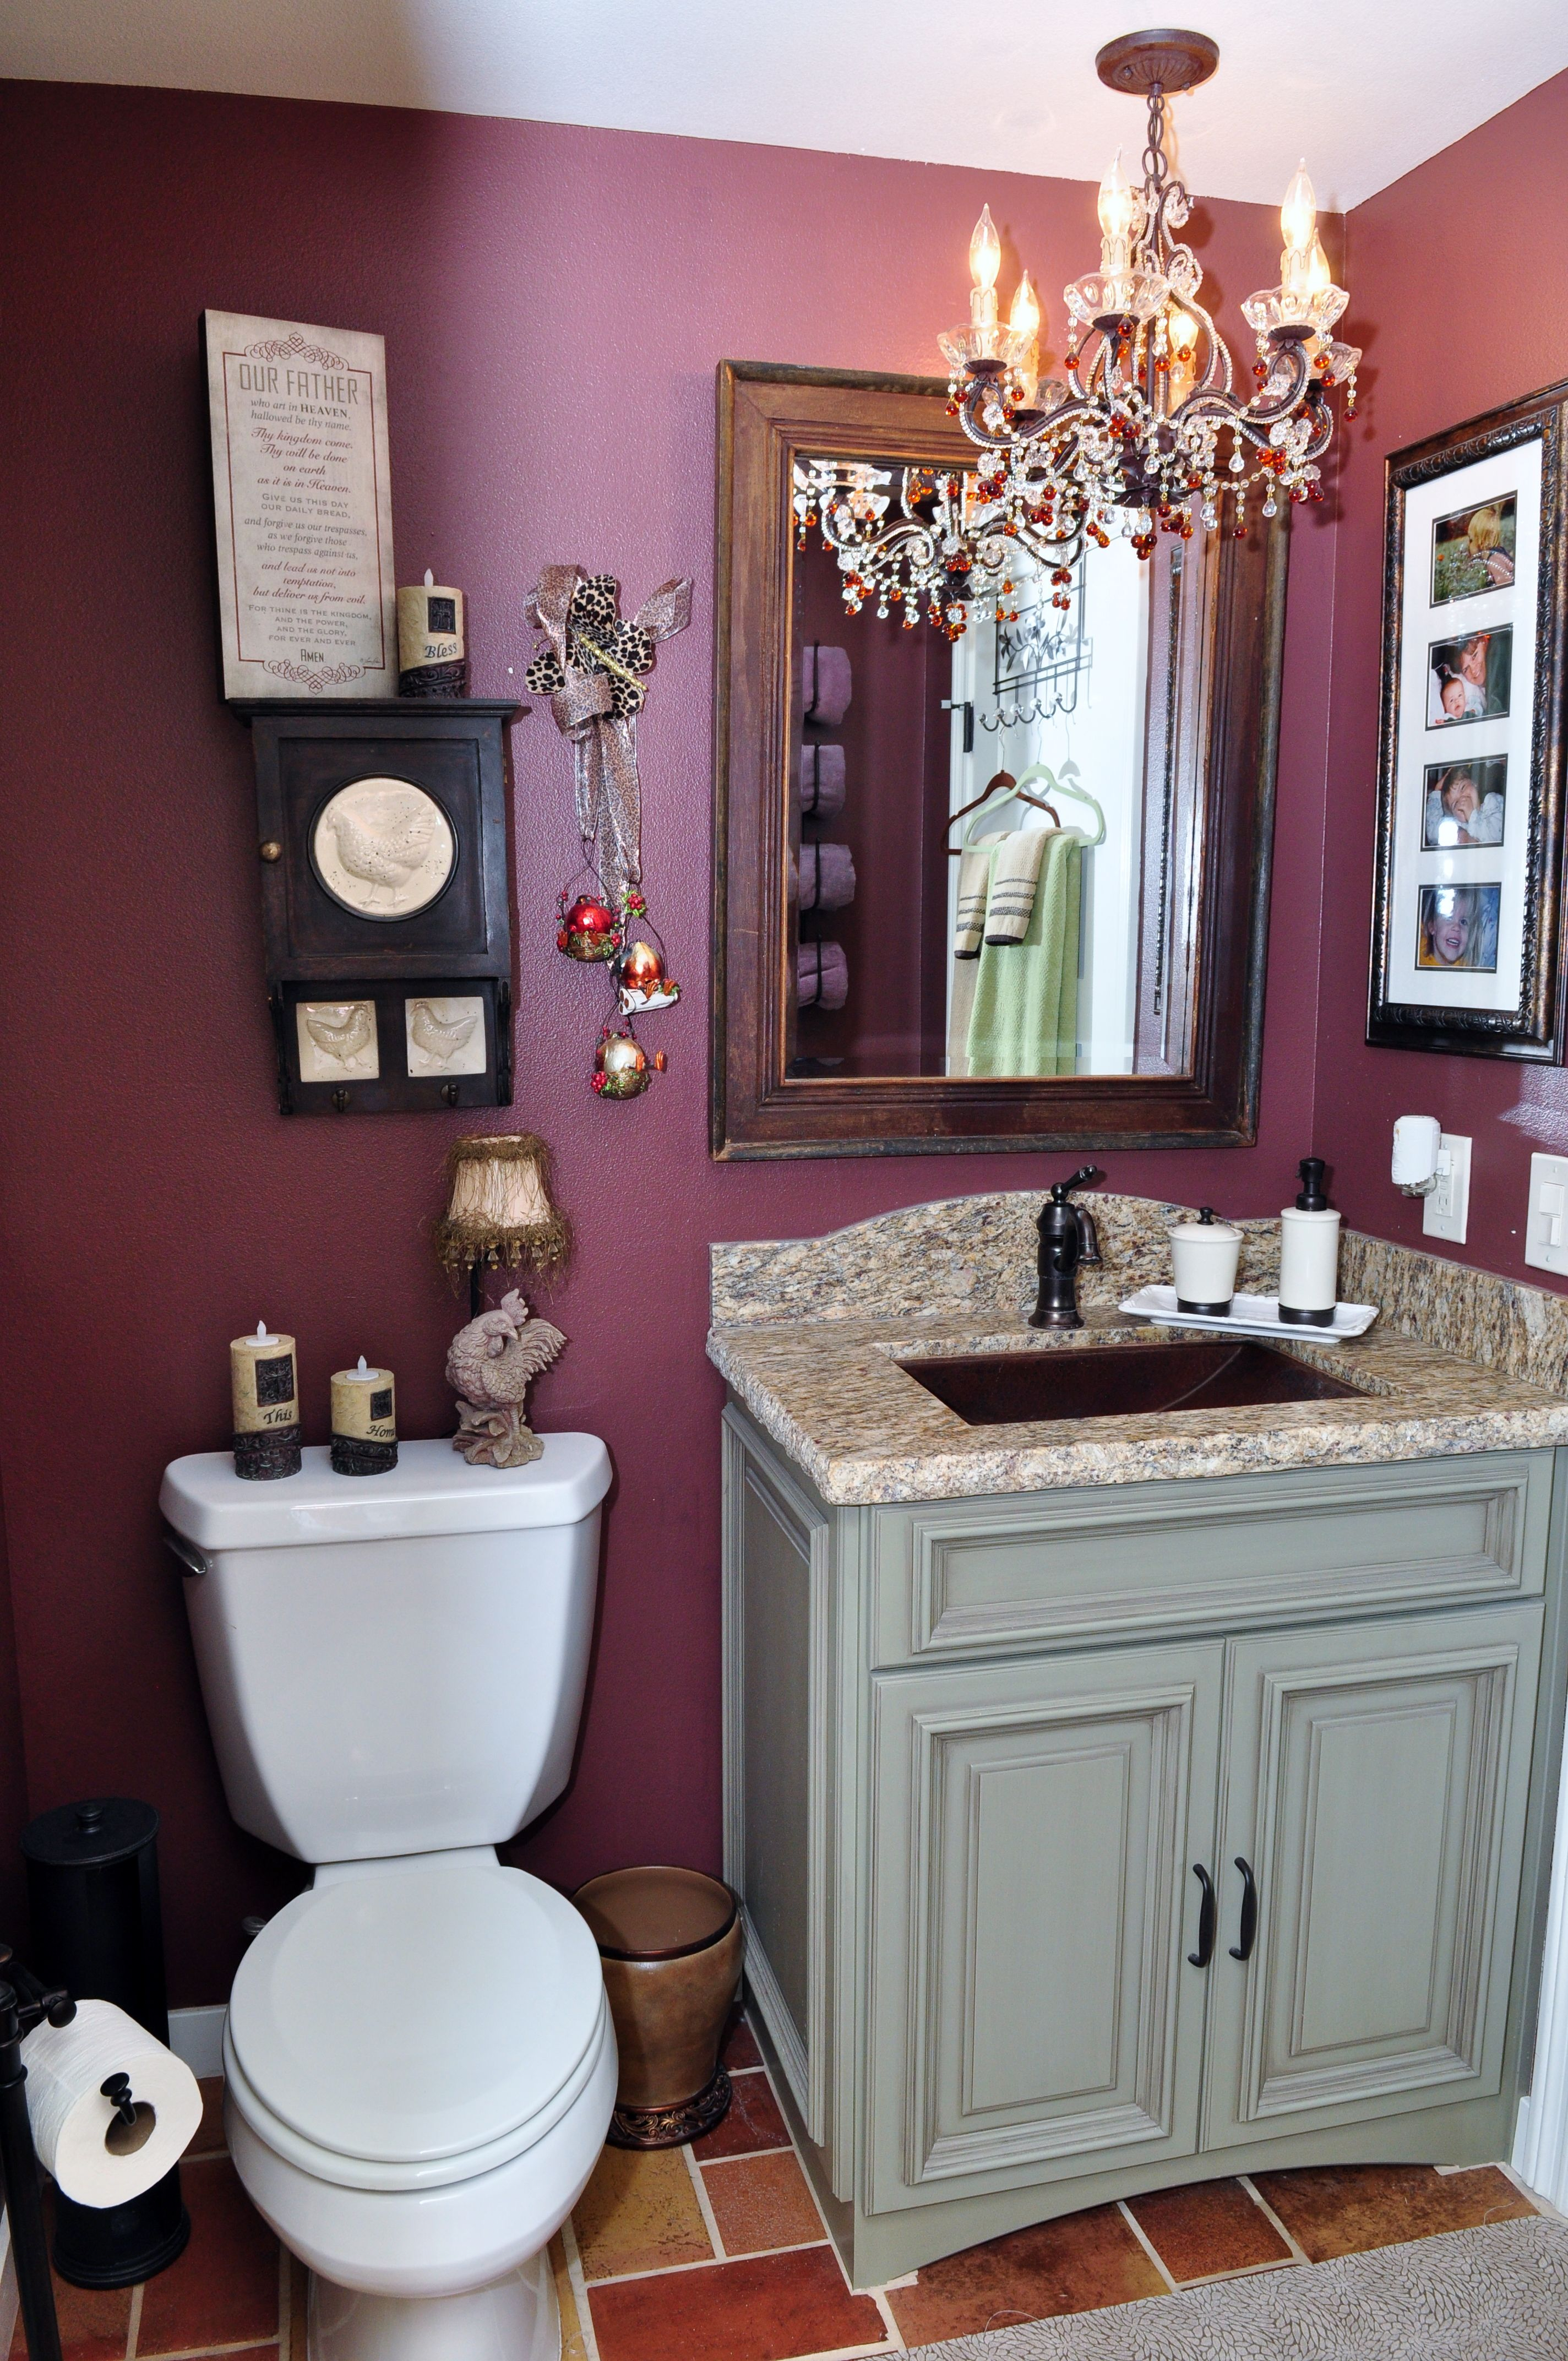 Vanity done in Maple Wood with a Pesto Hazlenut finish accented with ...